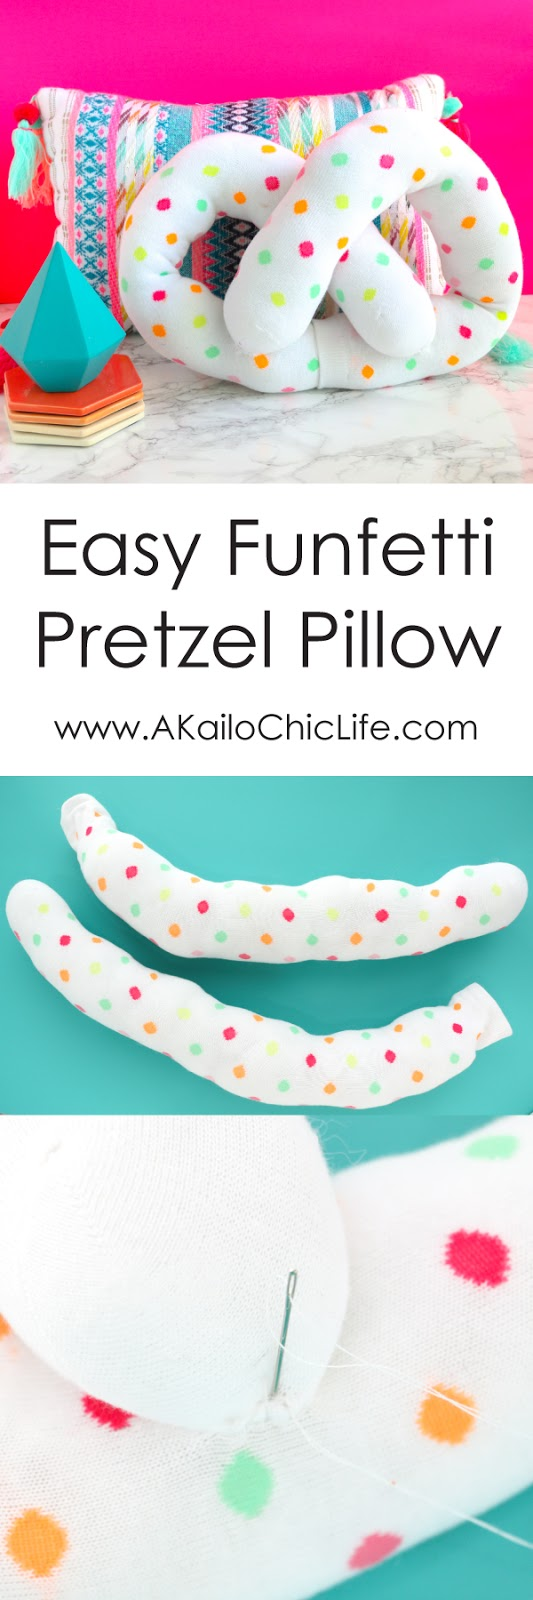 Funfetti Pretzel Pillow Tutorial - Learn how to make a confetti pretzel pillow from a pair of knee socks using only a few simple hand stitches - no sewing machine required!